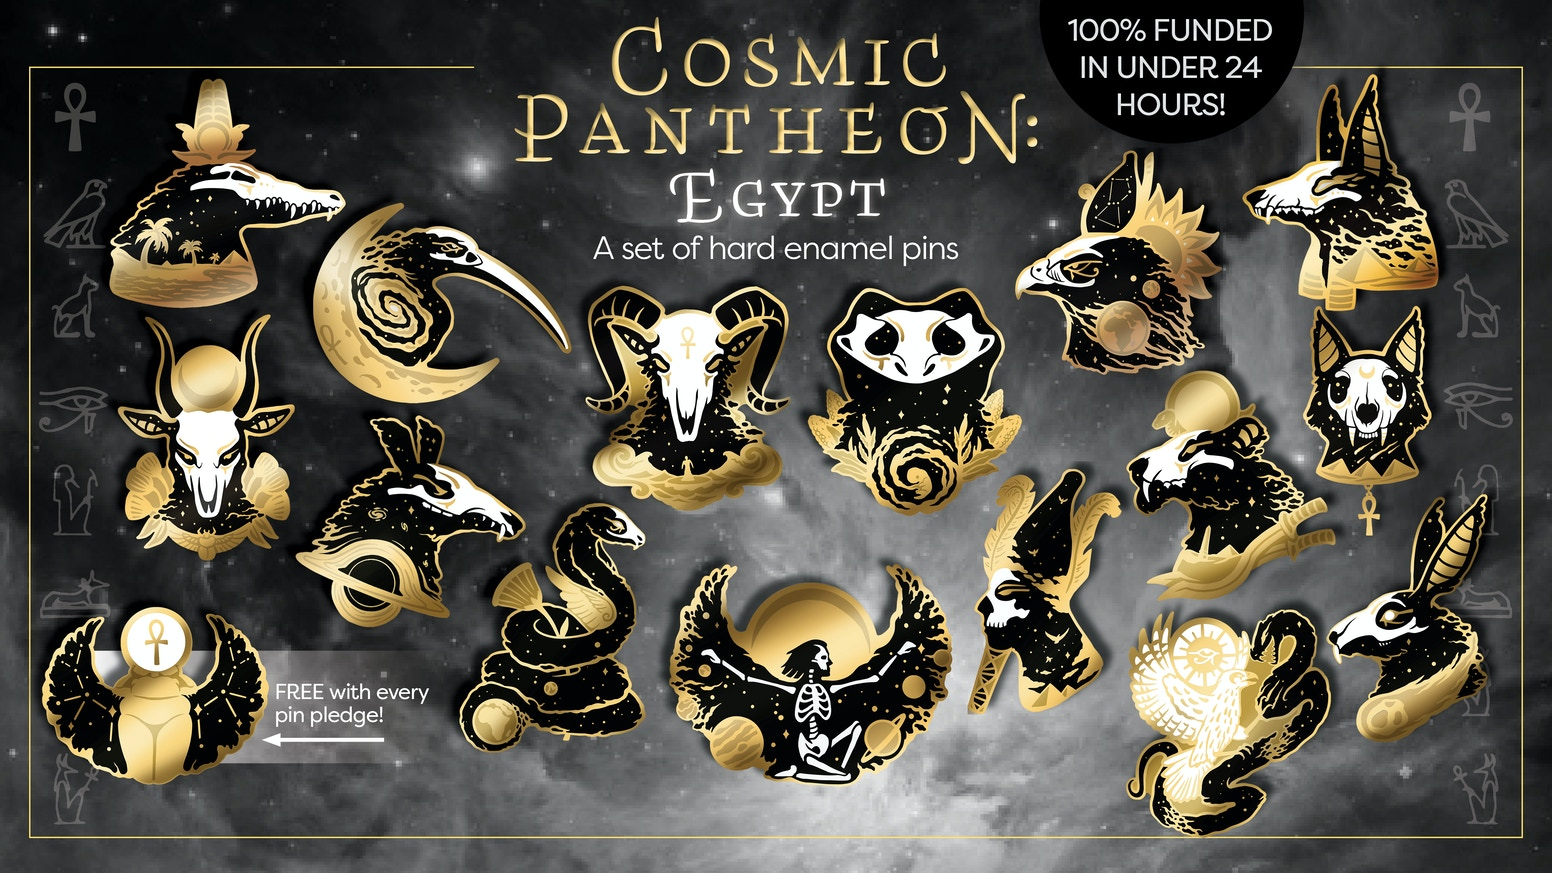 A cosmic set of hard enamel pins featuring gods and goddesses from ancient Egyptian mythology.